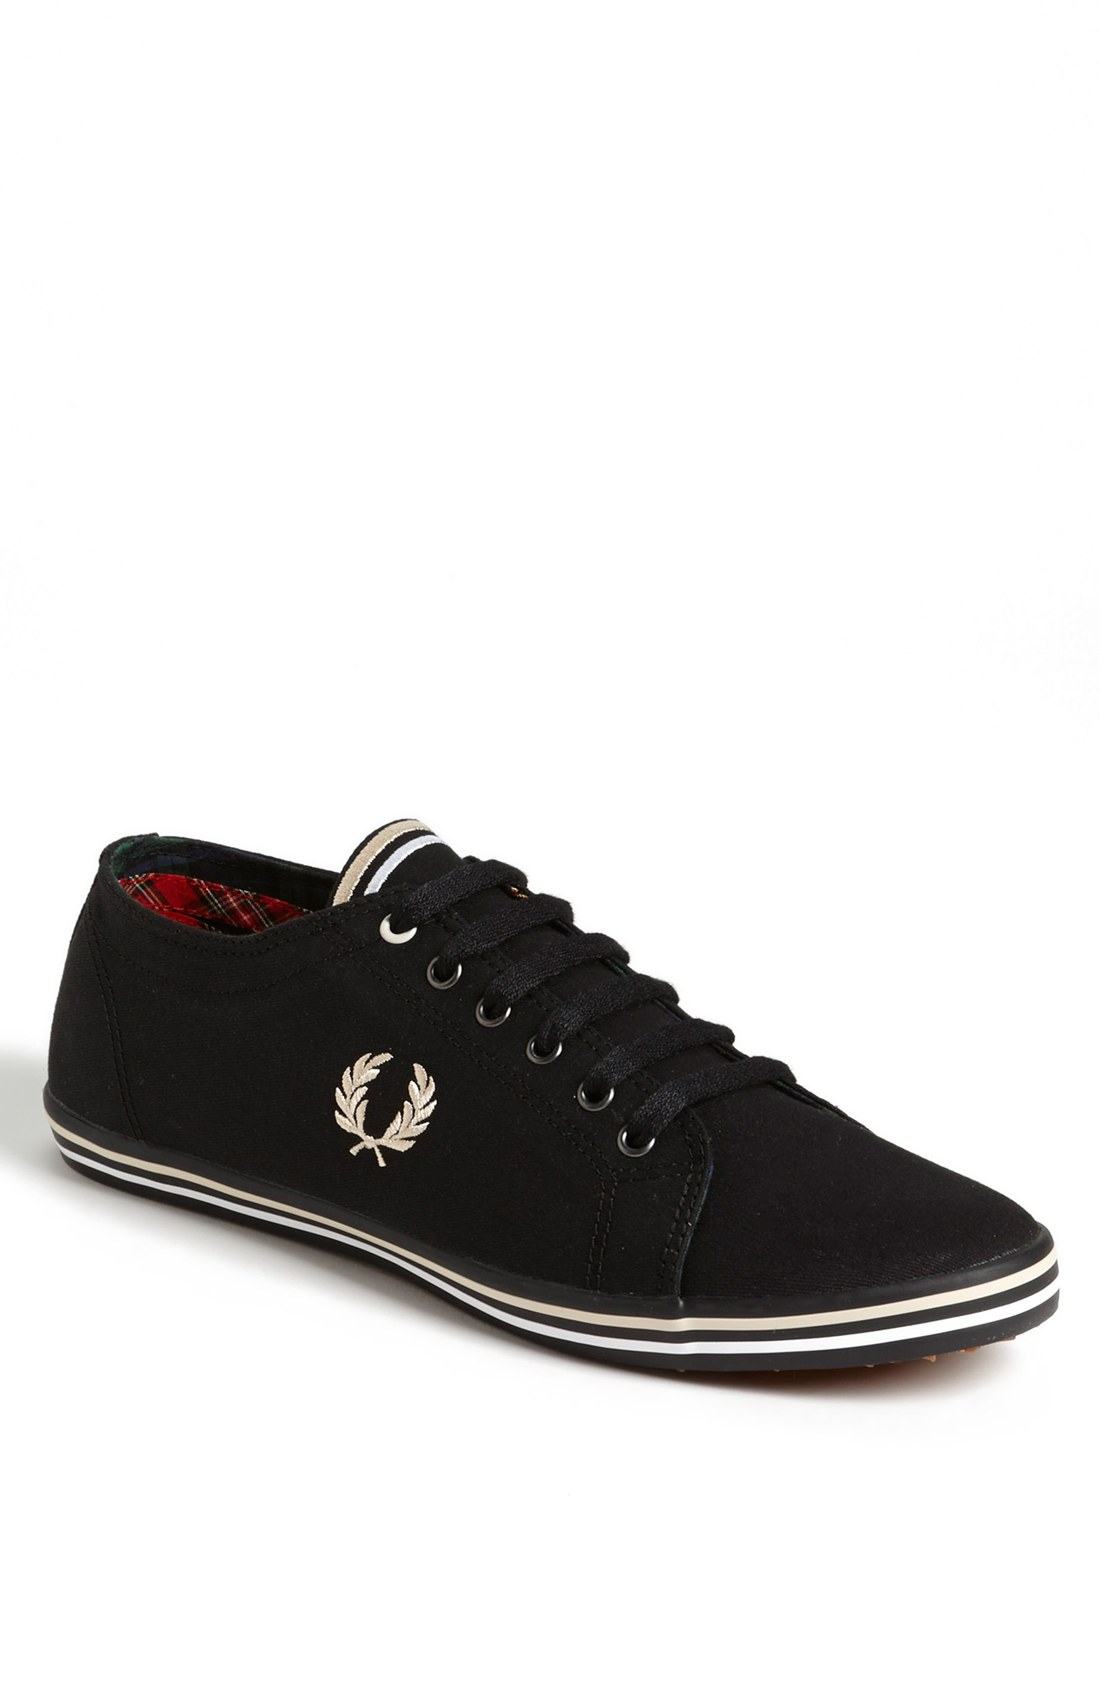 fred perry kingston sneaker in black for men lyst. Black Bedroom Furniture Sets. Home Design Ideas